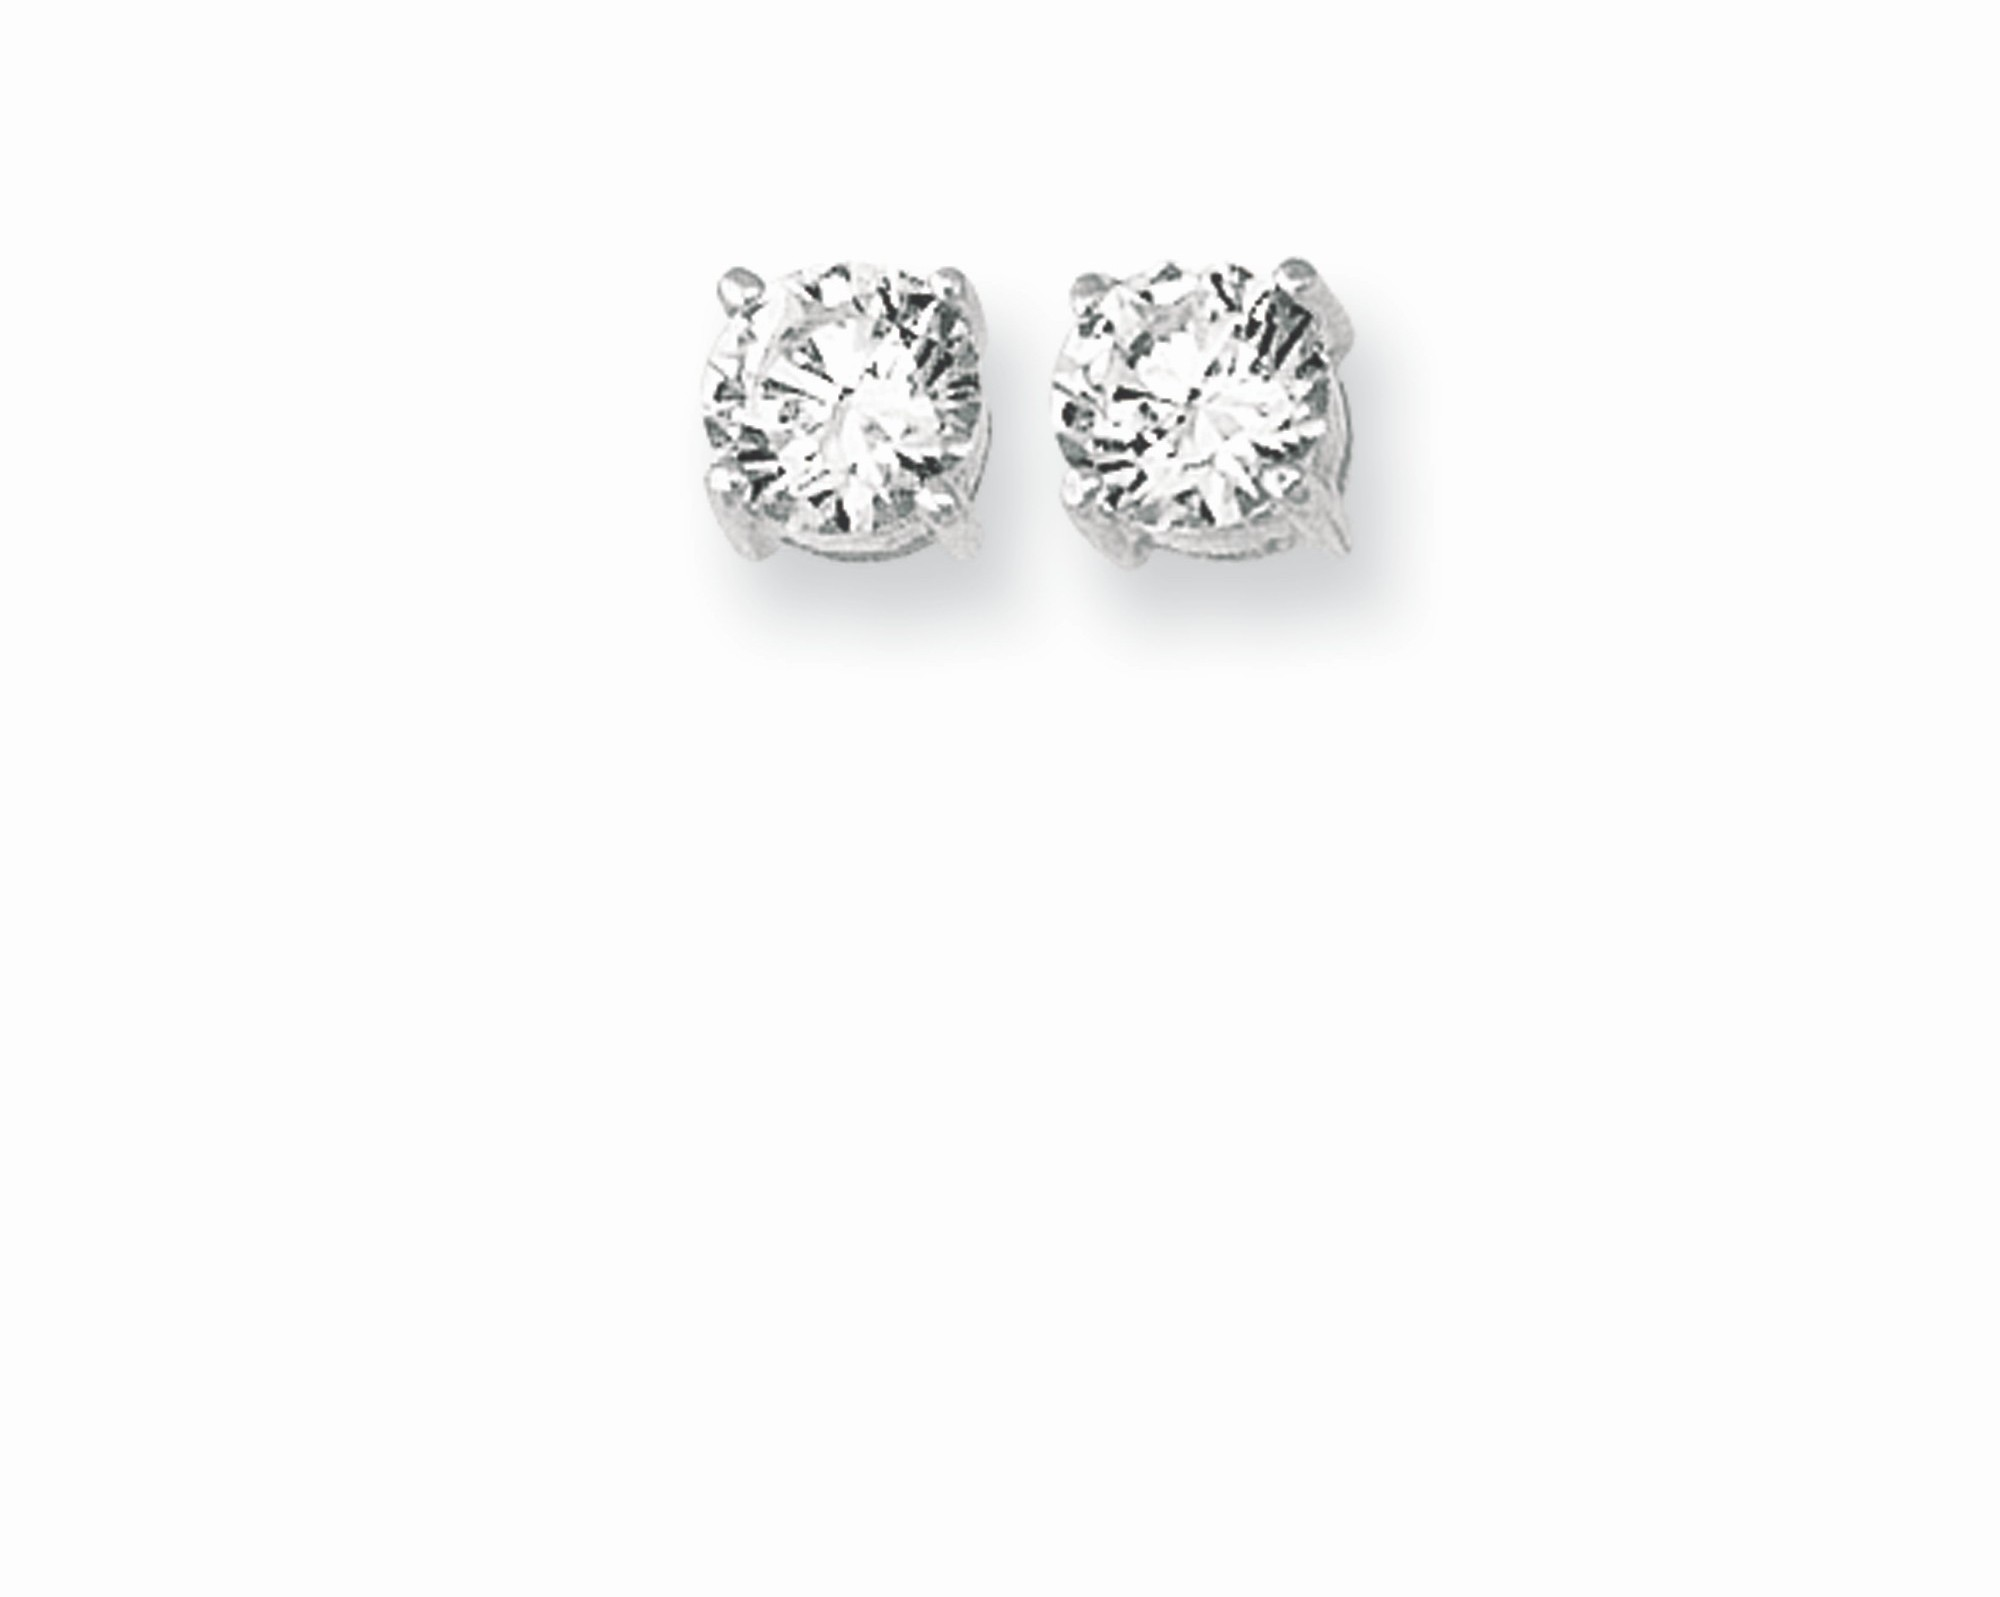 "Silver Rhodium Plated Shiny 6.0mm (1/4"") Clear Round Cubic Zirconia (CZ) Post Back Earrings"